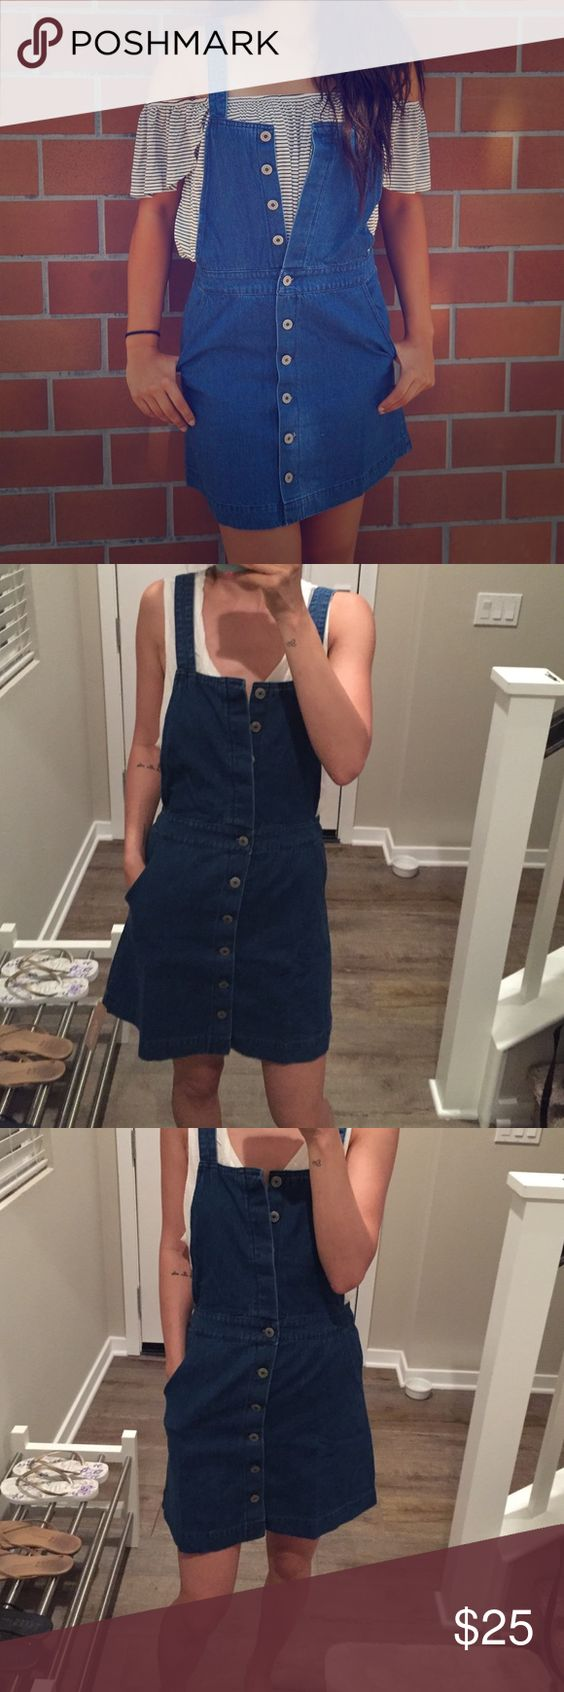 Overall denim dress Brand new overall denim dress with adjustable button strap! Dresses Mini